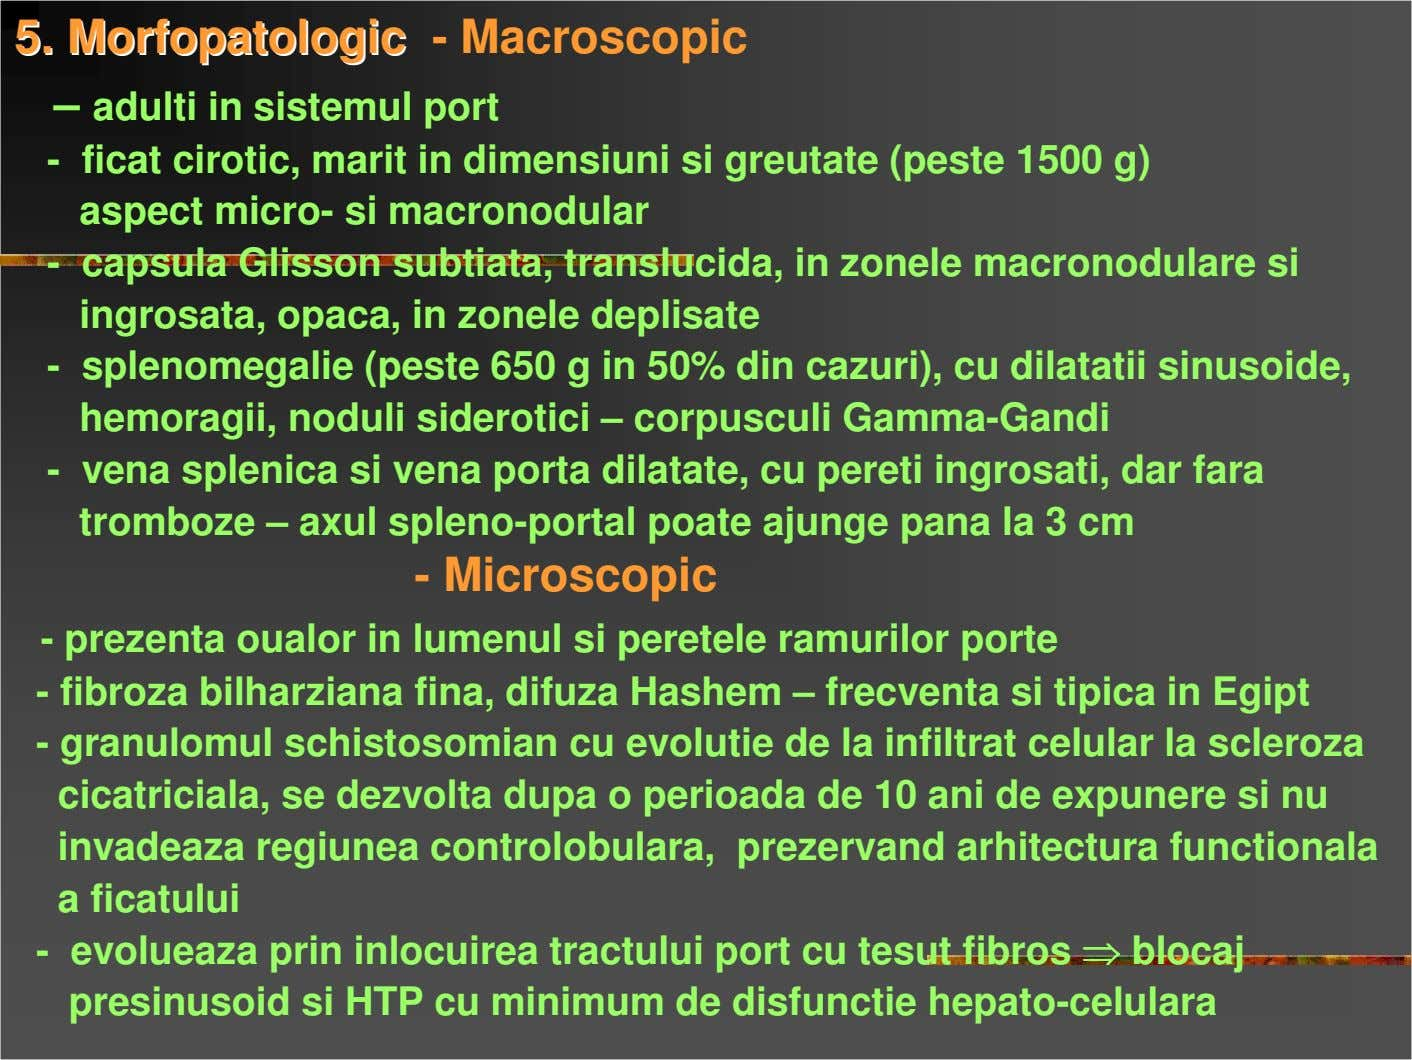 55 MMoorrffooppaattoollooggiicc - Macroscopic – adulti in sistemul port - ficat cirotic, marit in dimensiuni